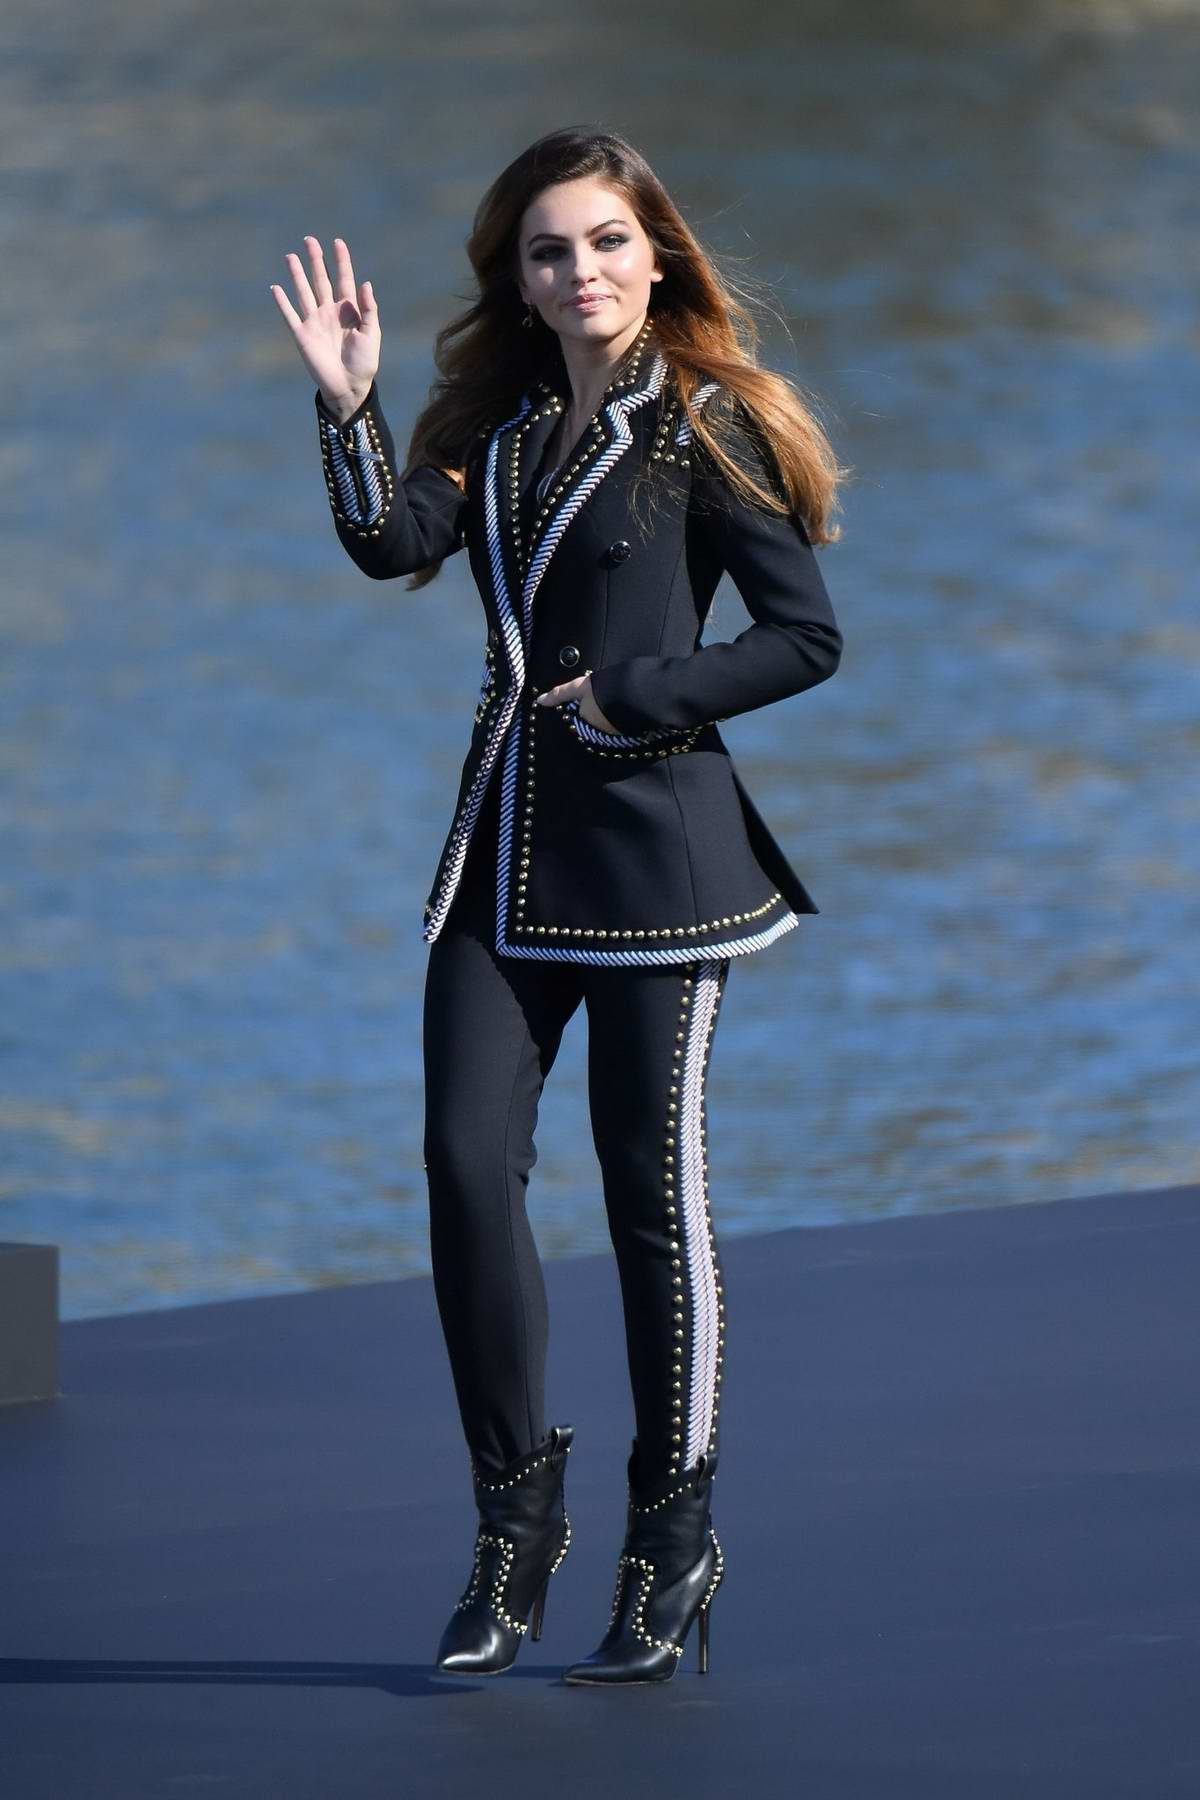 Thylane Blondeau walks the runway for the L'oreal Fashion Show during Paris Fashion Week in Paris, France